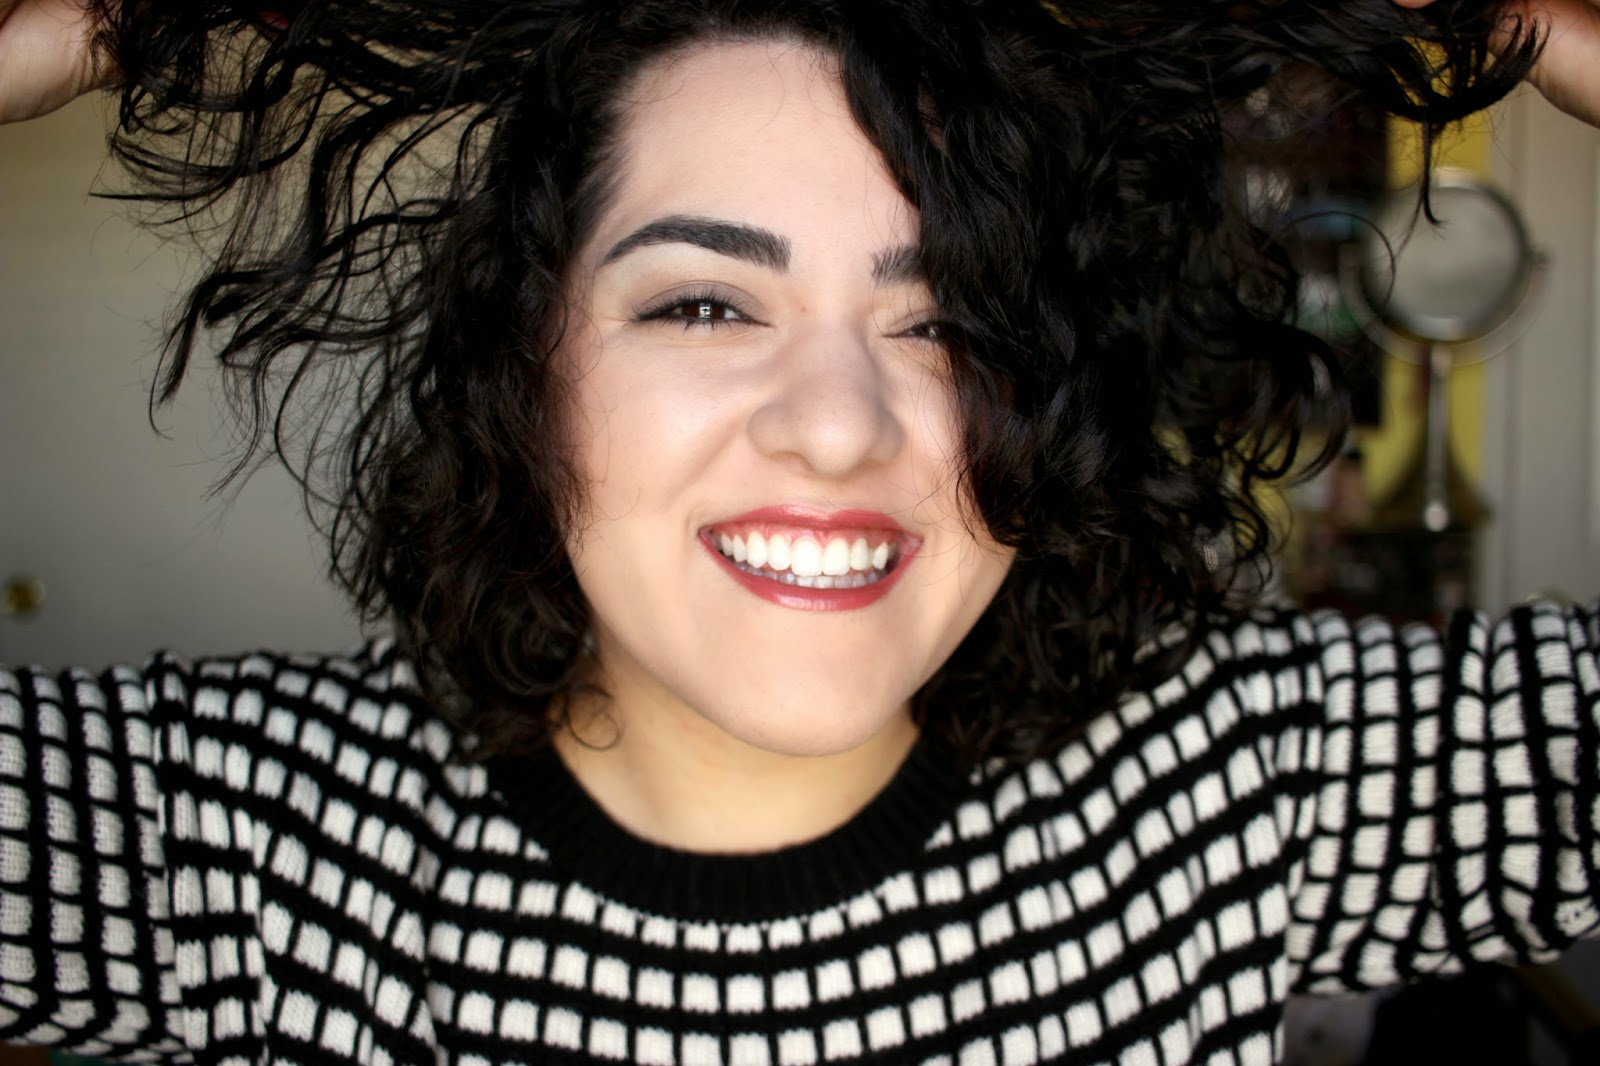 My Everyday Hair Routine for Wavy/Curly Hair